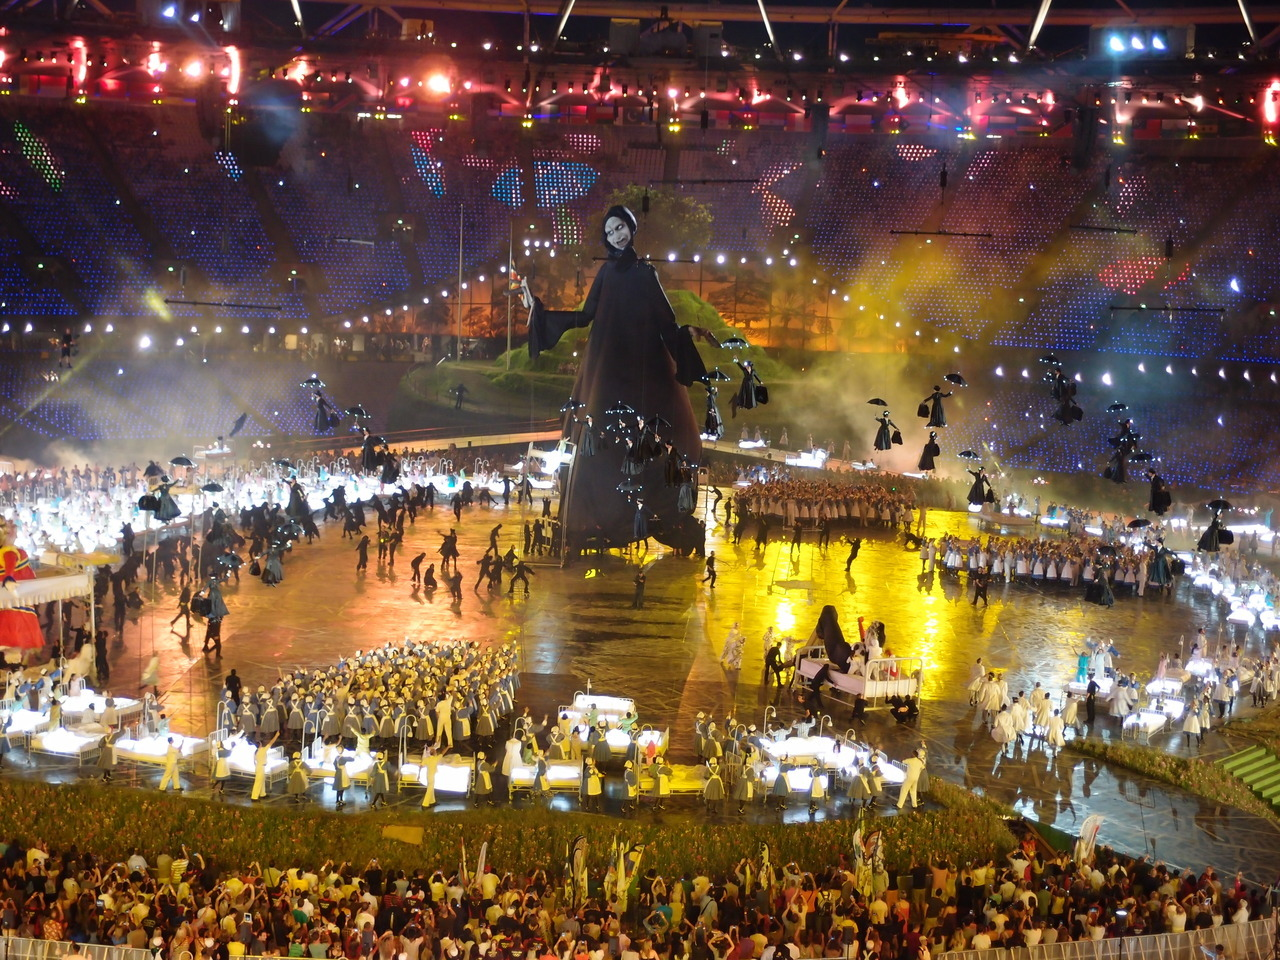 Still trying to wrap your head around this year's Olympics Opening Ceremony? We've got some analysis to help you parse the madness.